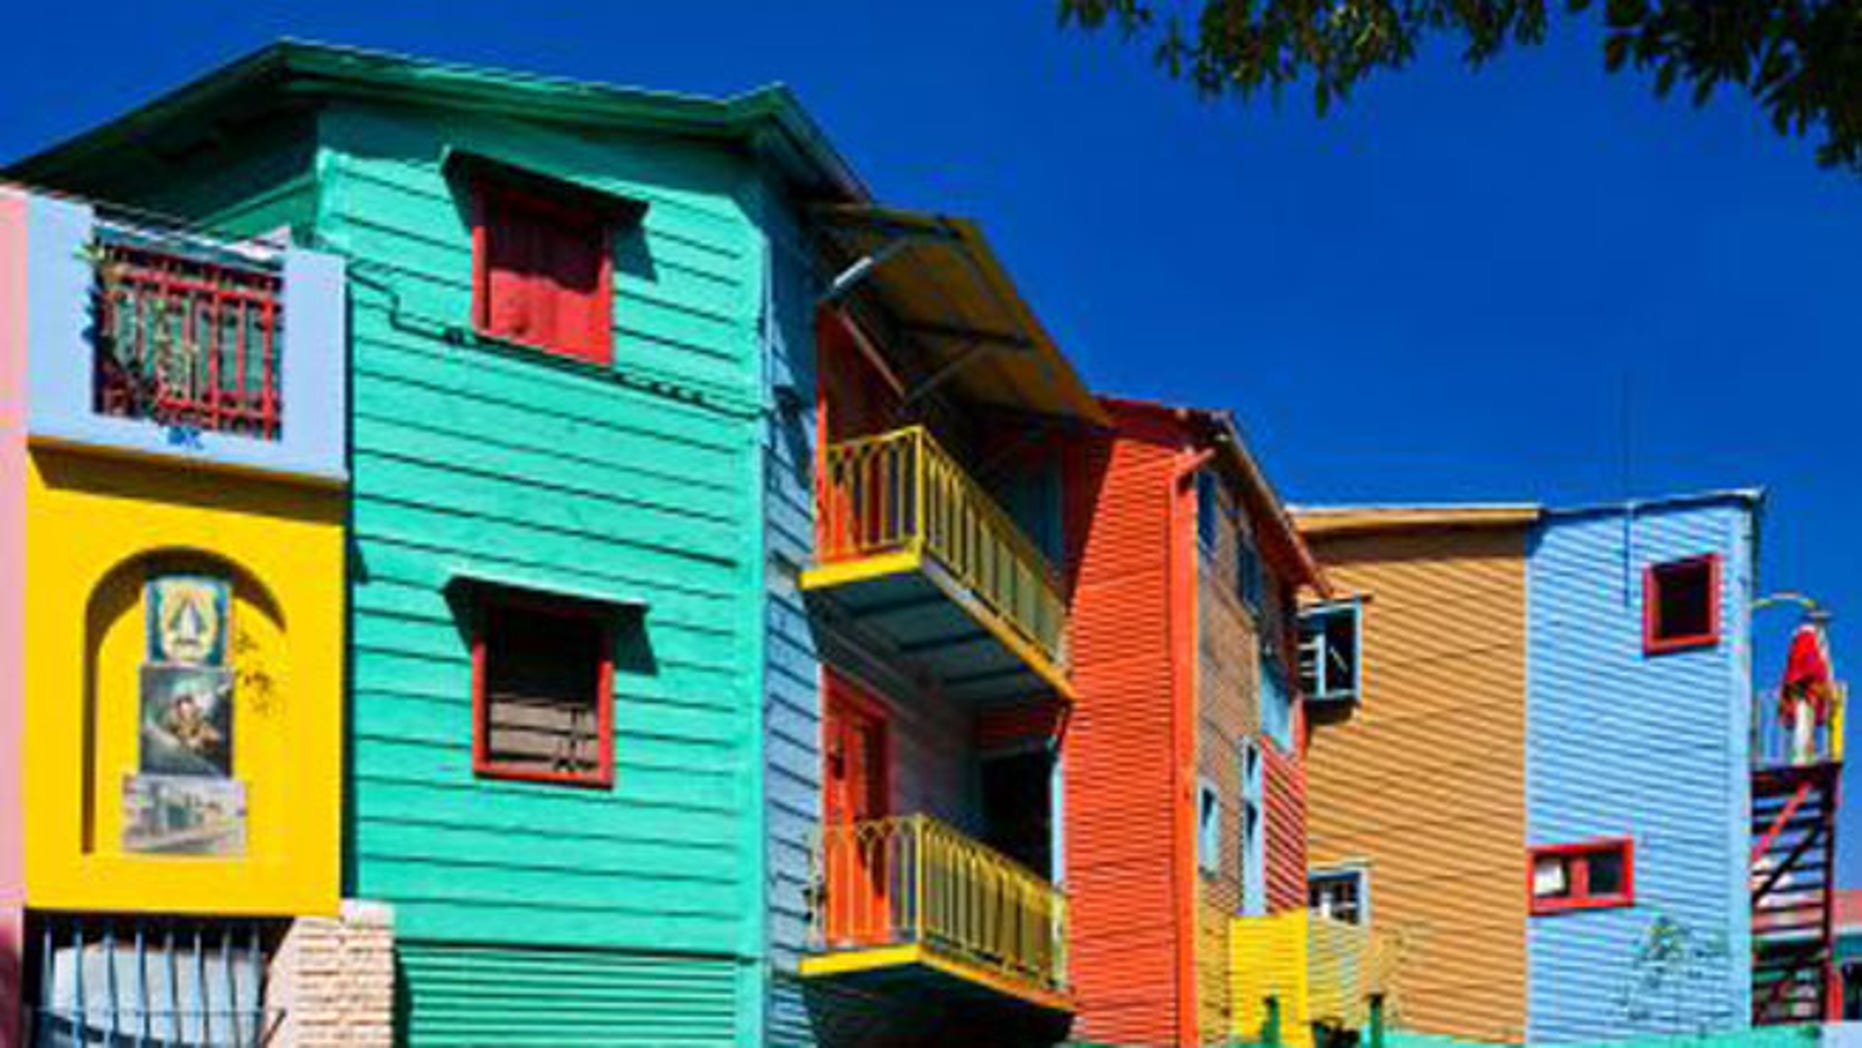 Buenos Aires' La Boca neighborhood has paint-by-numbers conventillo homes, built by Italian immigrants and daubed with vibrant primaries.